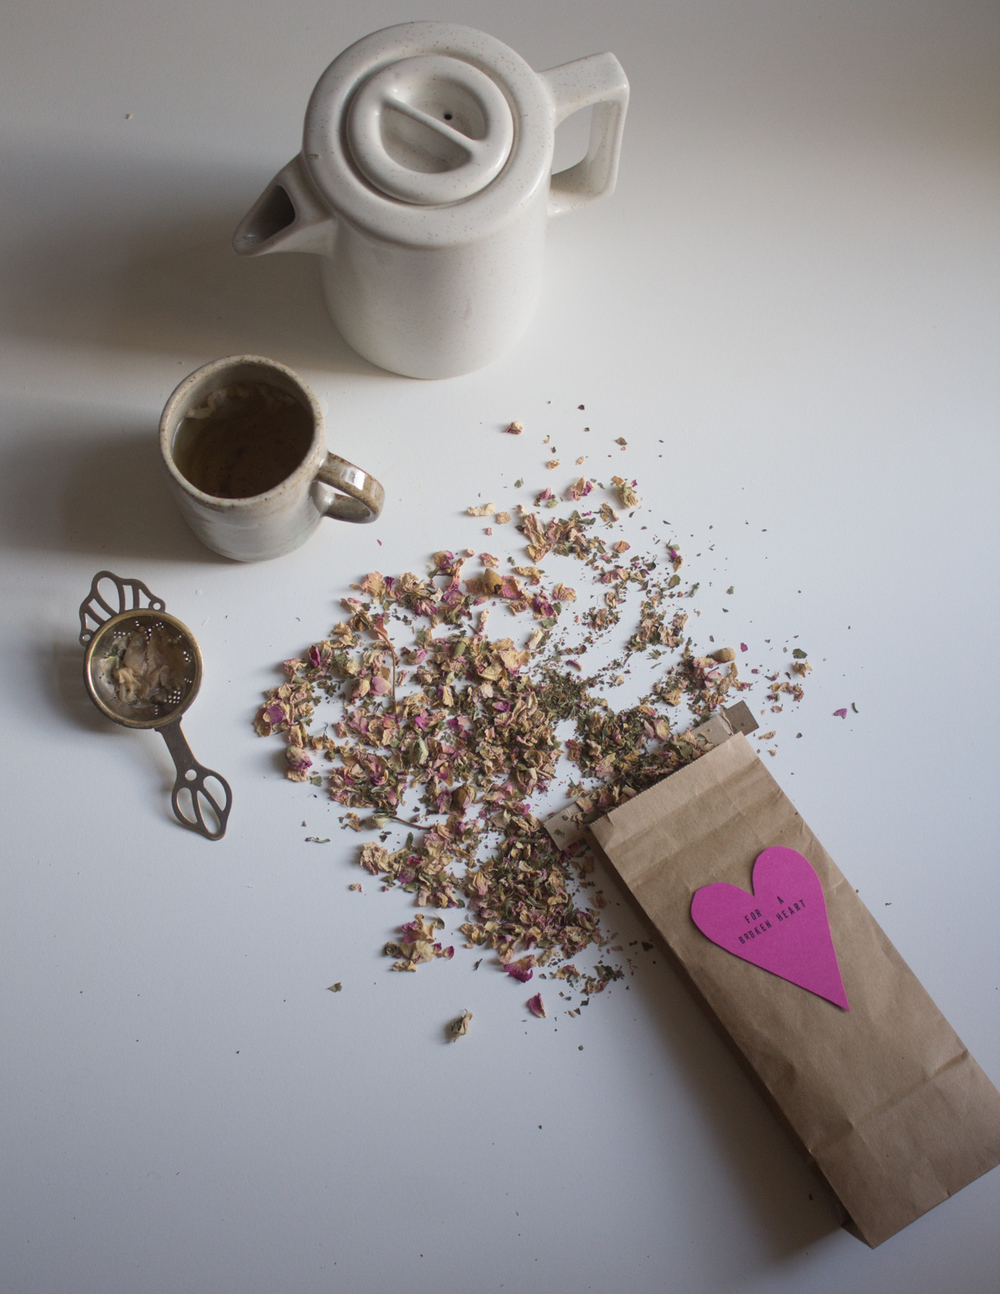 Tea for a broken heart.... on grief | Seeds and Stitches blog